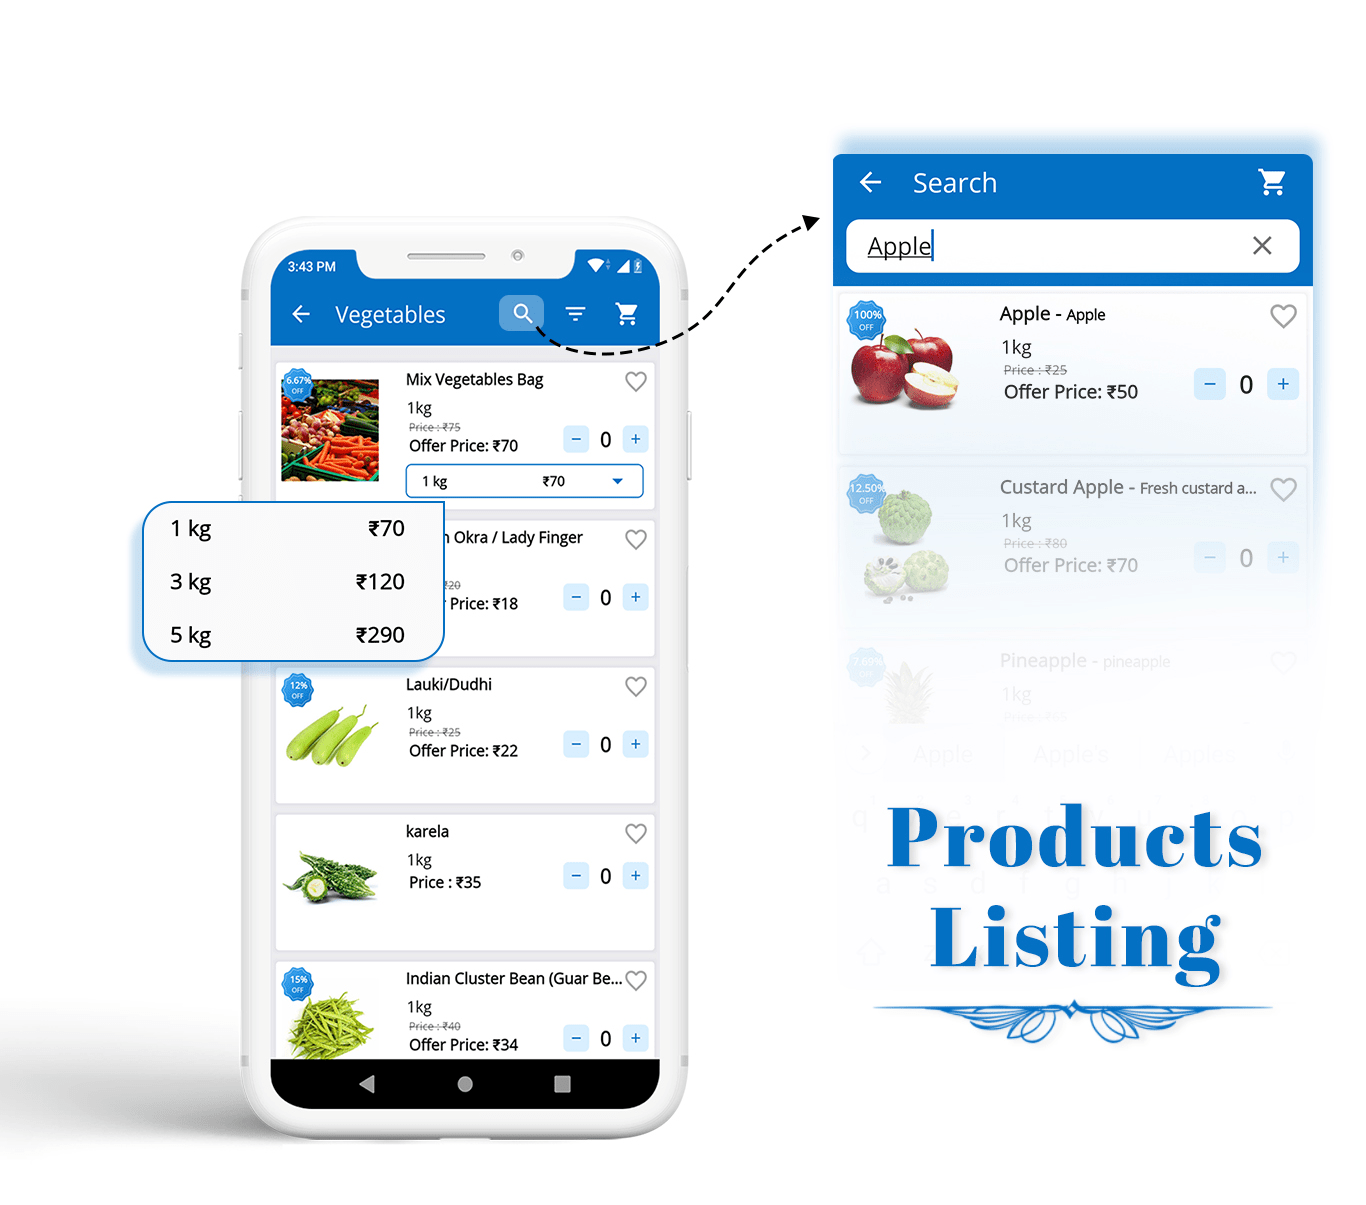 eCart - Grocery, Food Delivery, Fruits & Vegetable store, Full Android Ecommerce App - 7